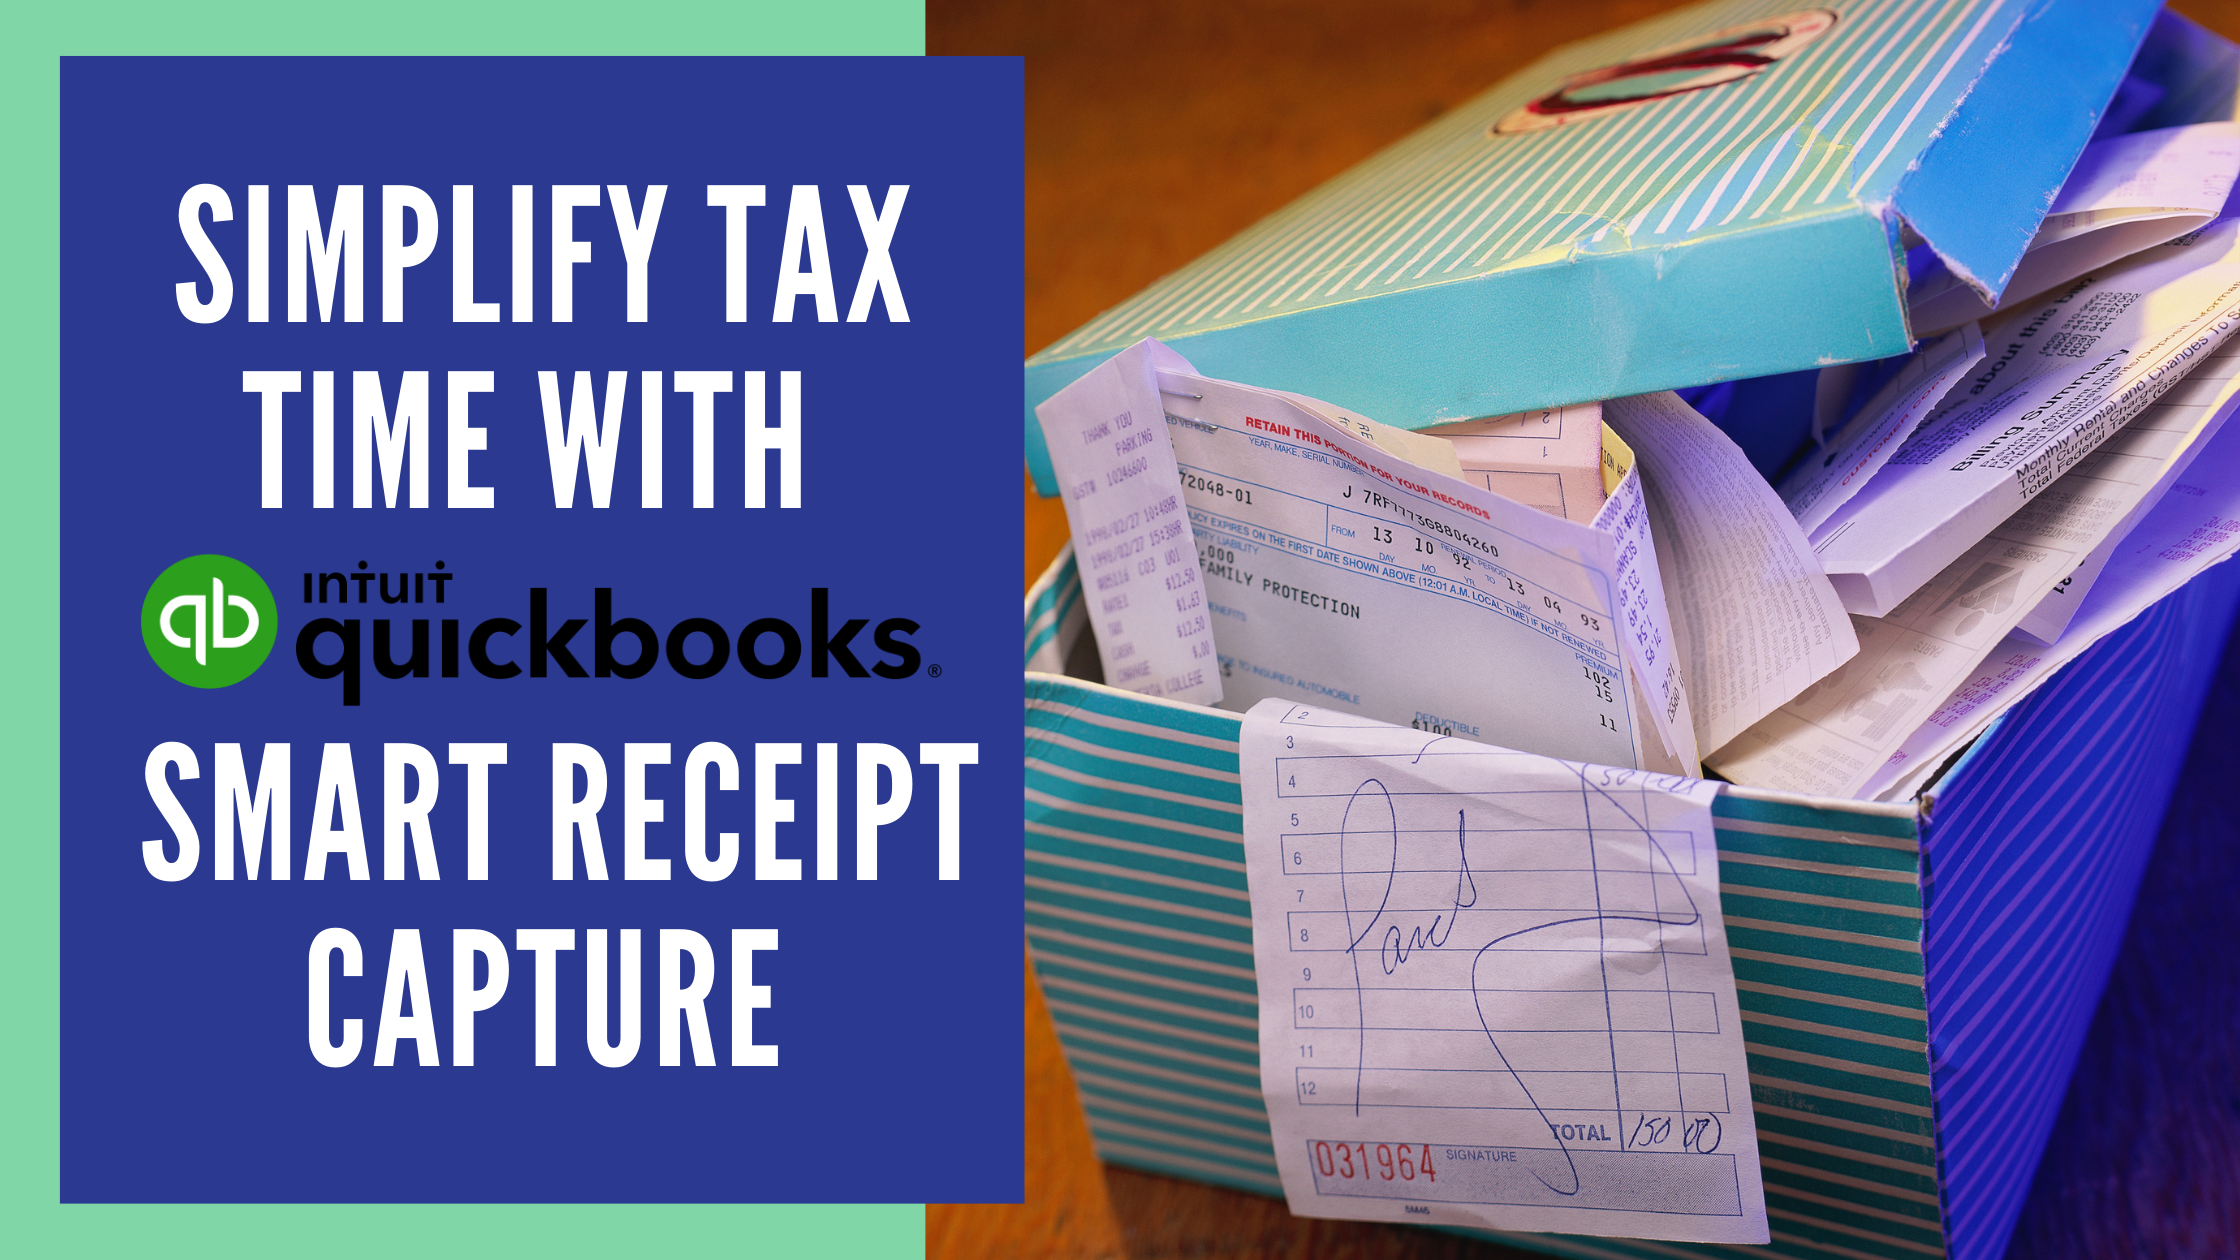 Simplify Tax Time with QuickBooks Smart Receipt Capture